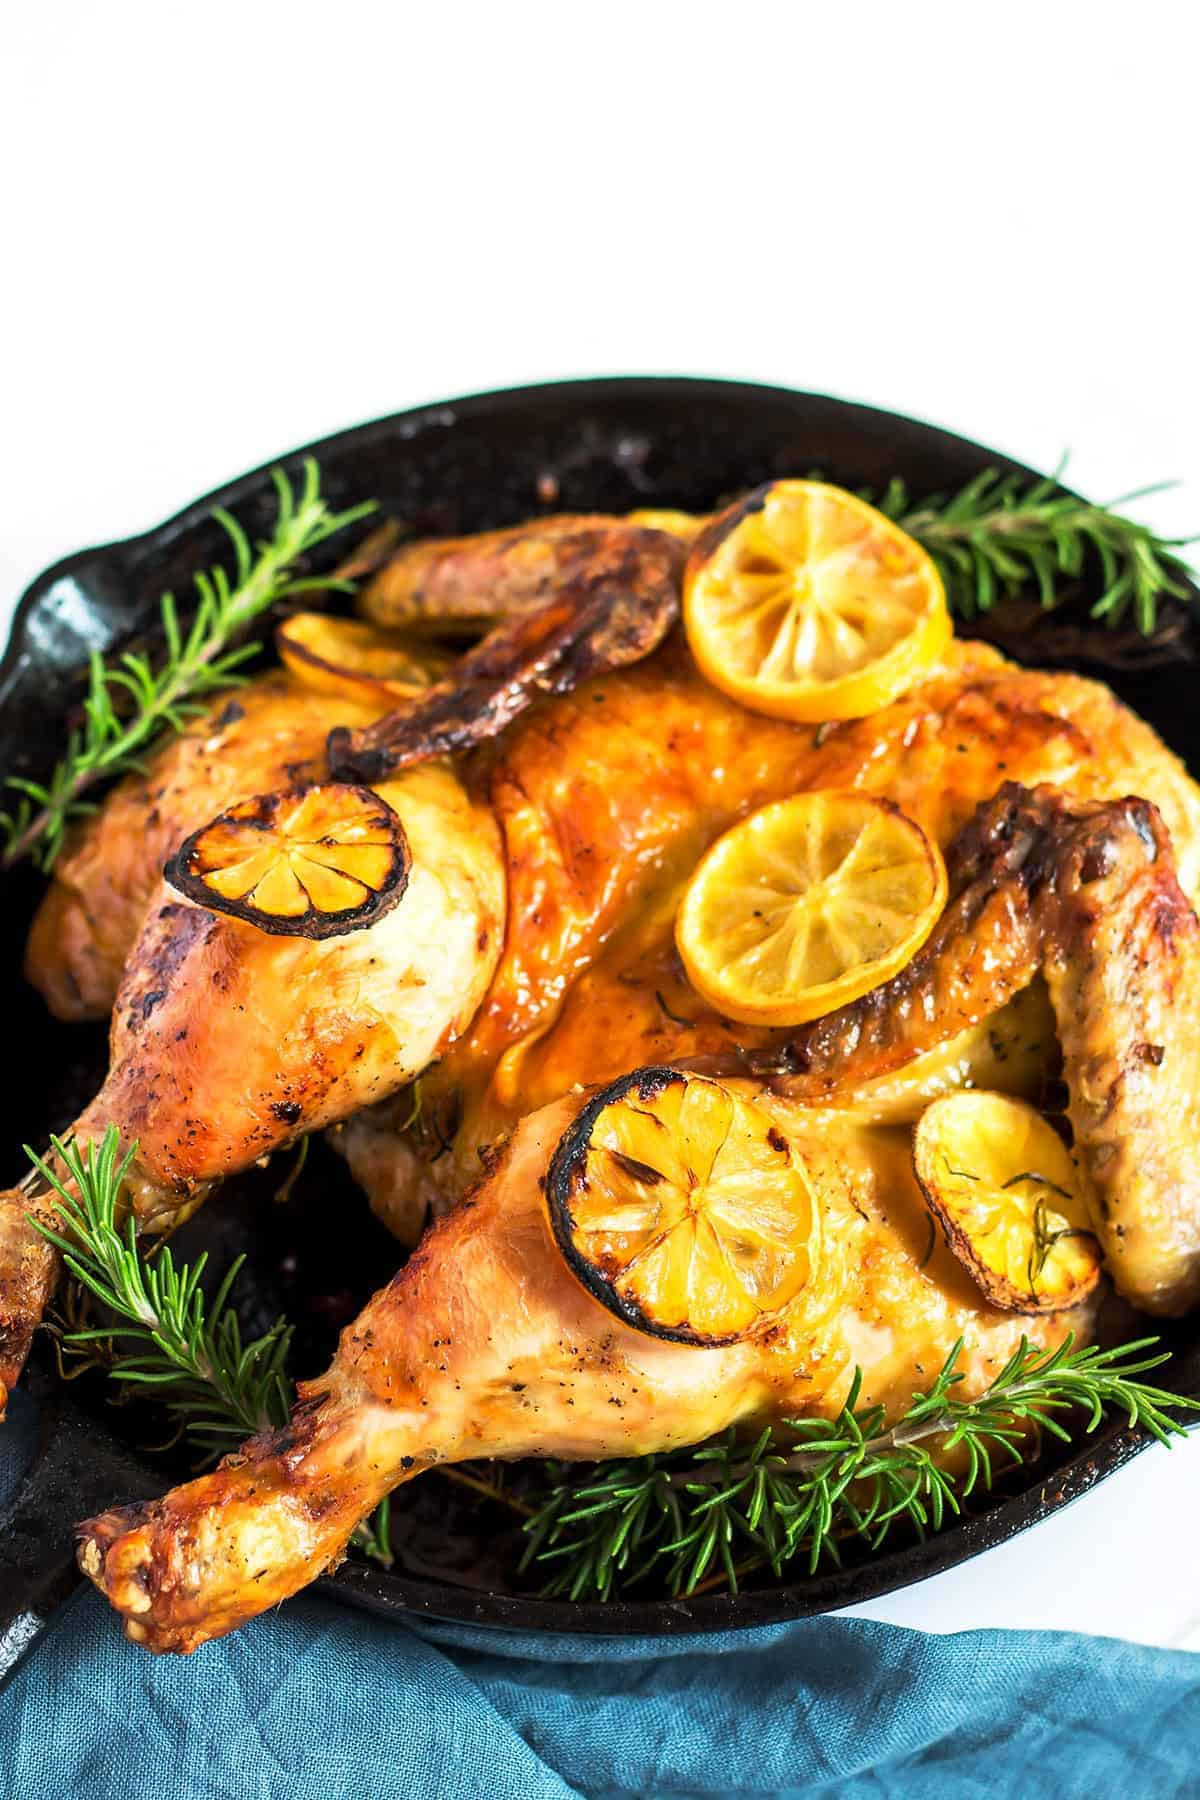 Roasted Spatchcock chicken in cast iron pan